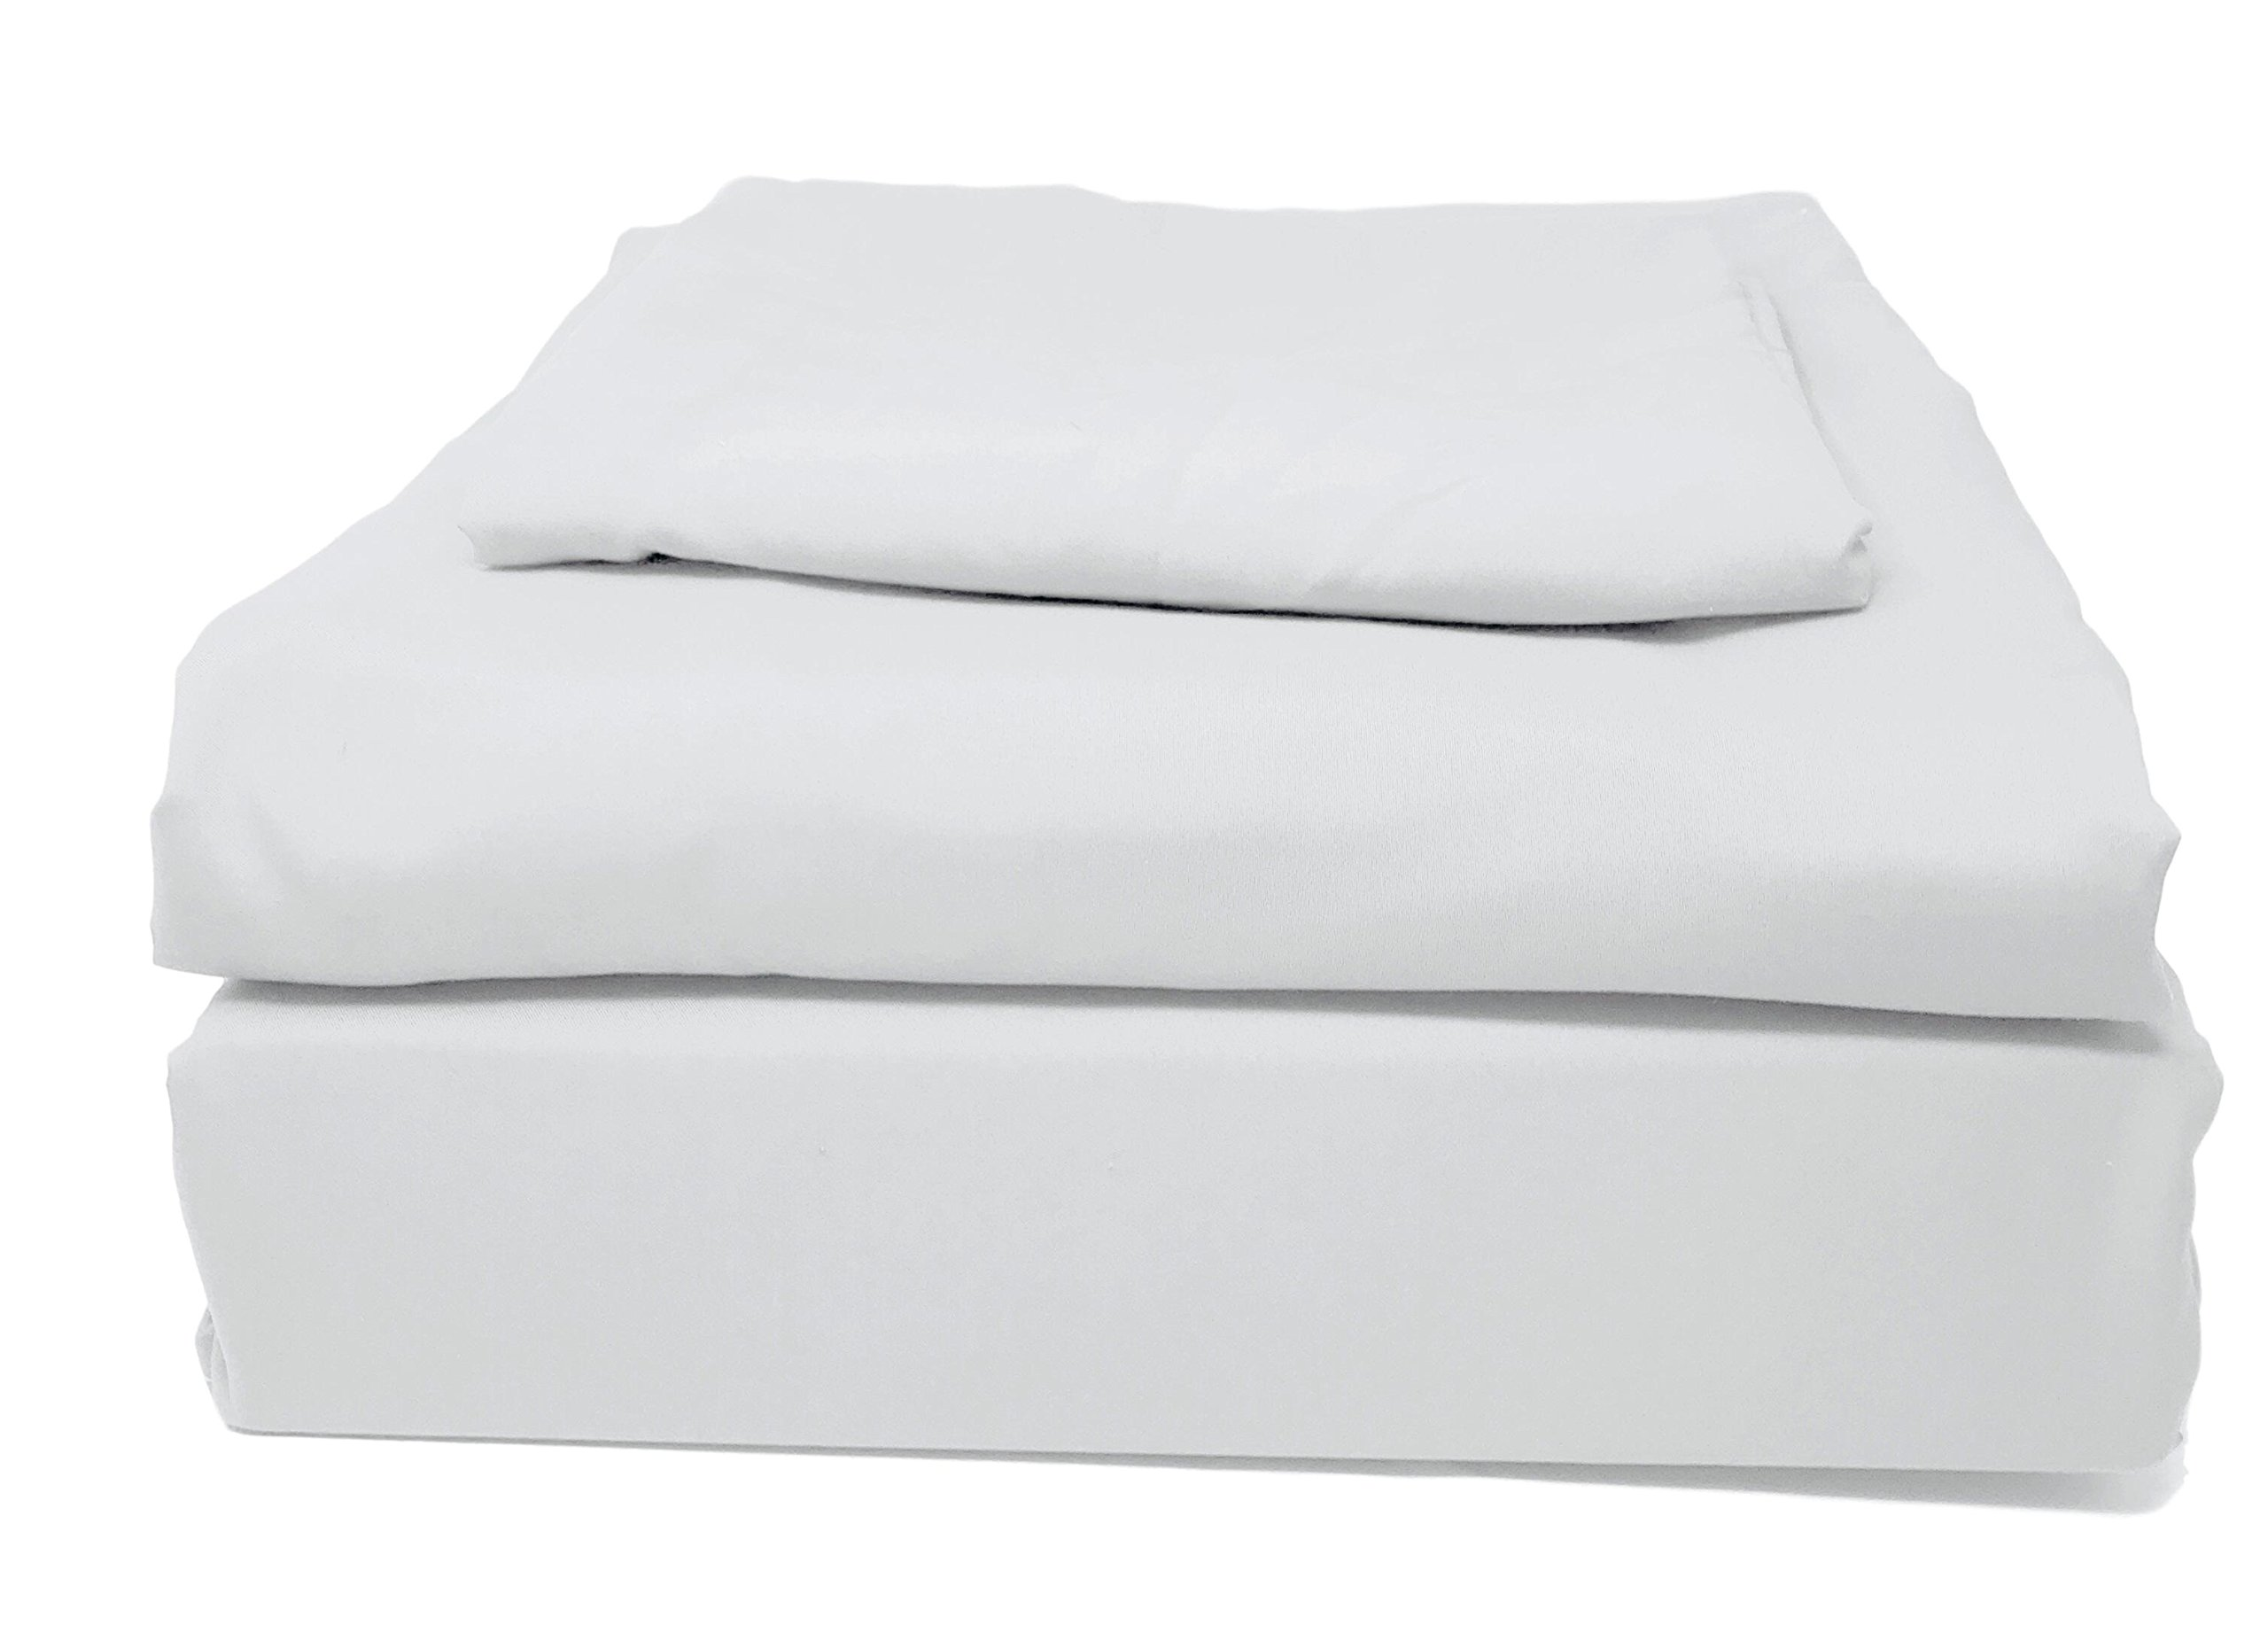 Tache Microfiber Deep Pocket Cloud White - Solid Color Fitted and Flat Luxury 3 Piece Sheet Set, Twin XL